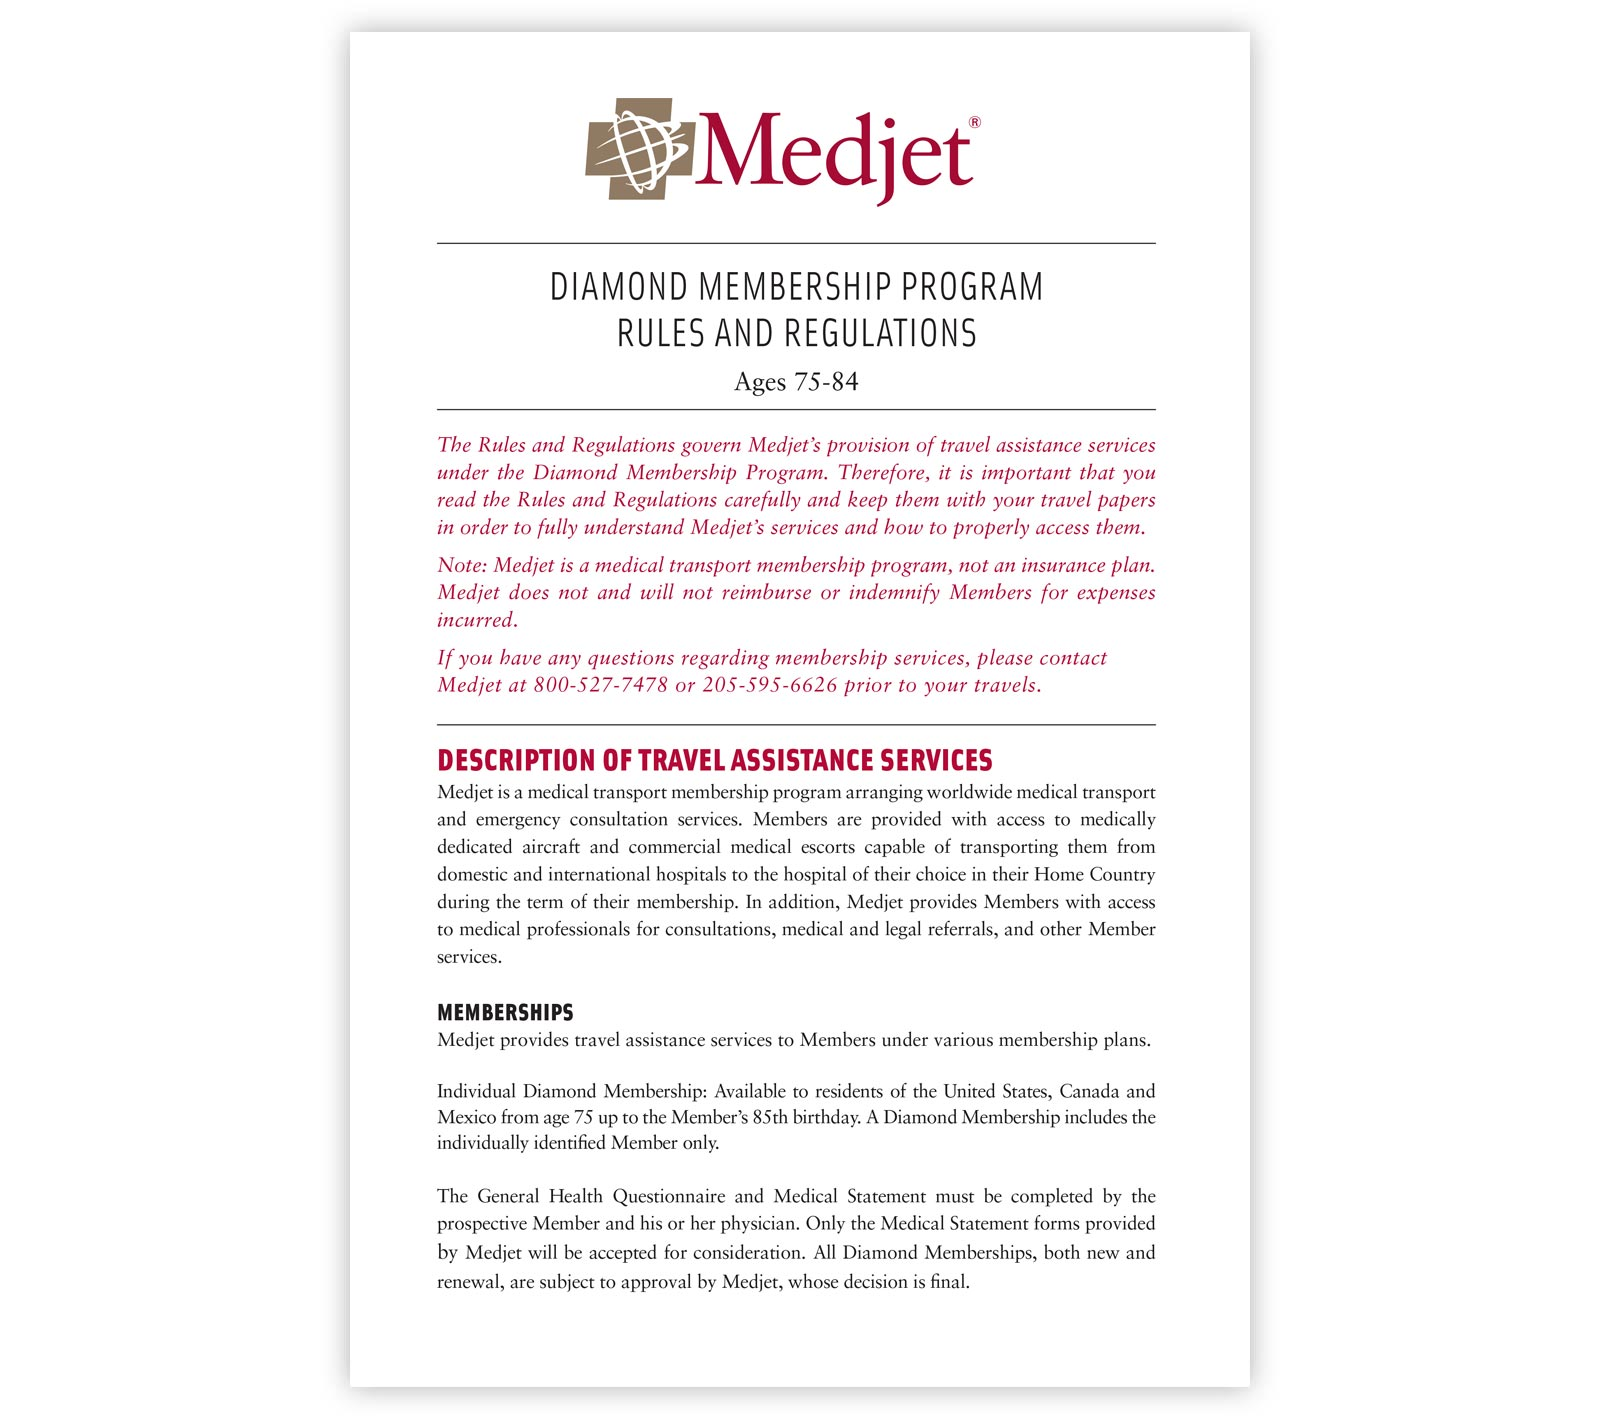 Medjet Diamond Membership Rules and Regulations